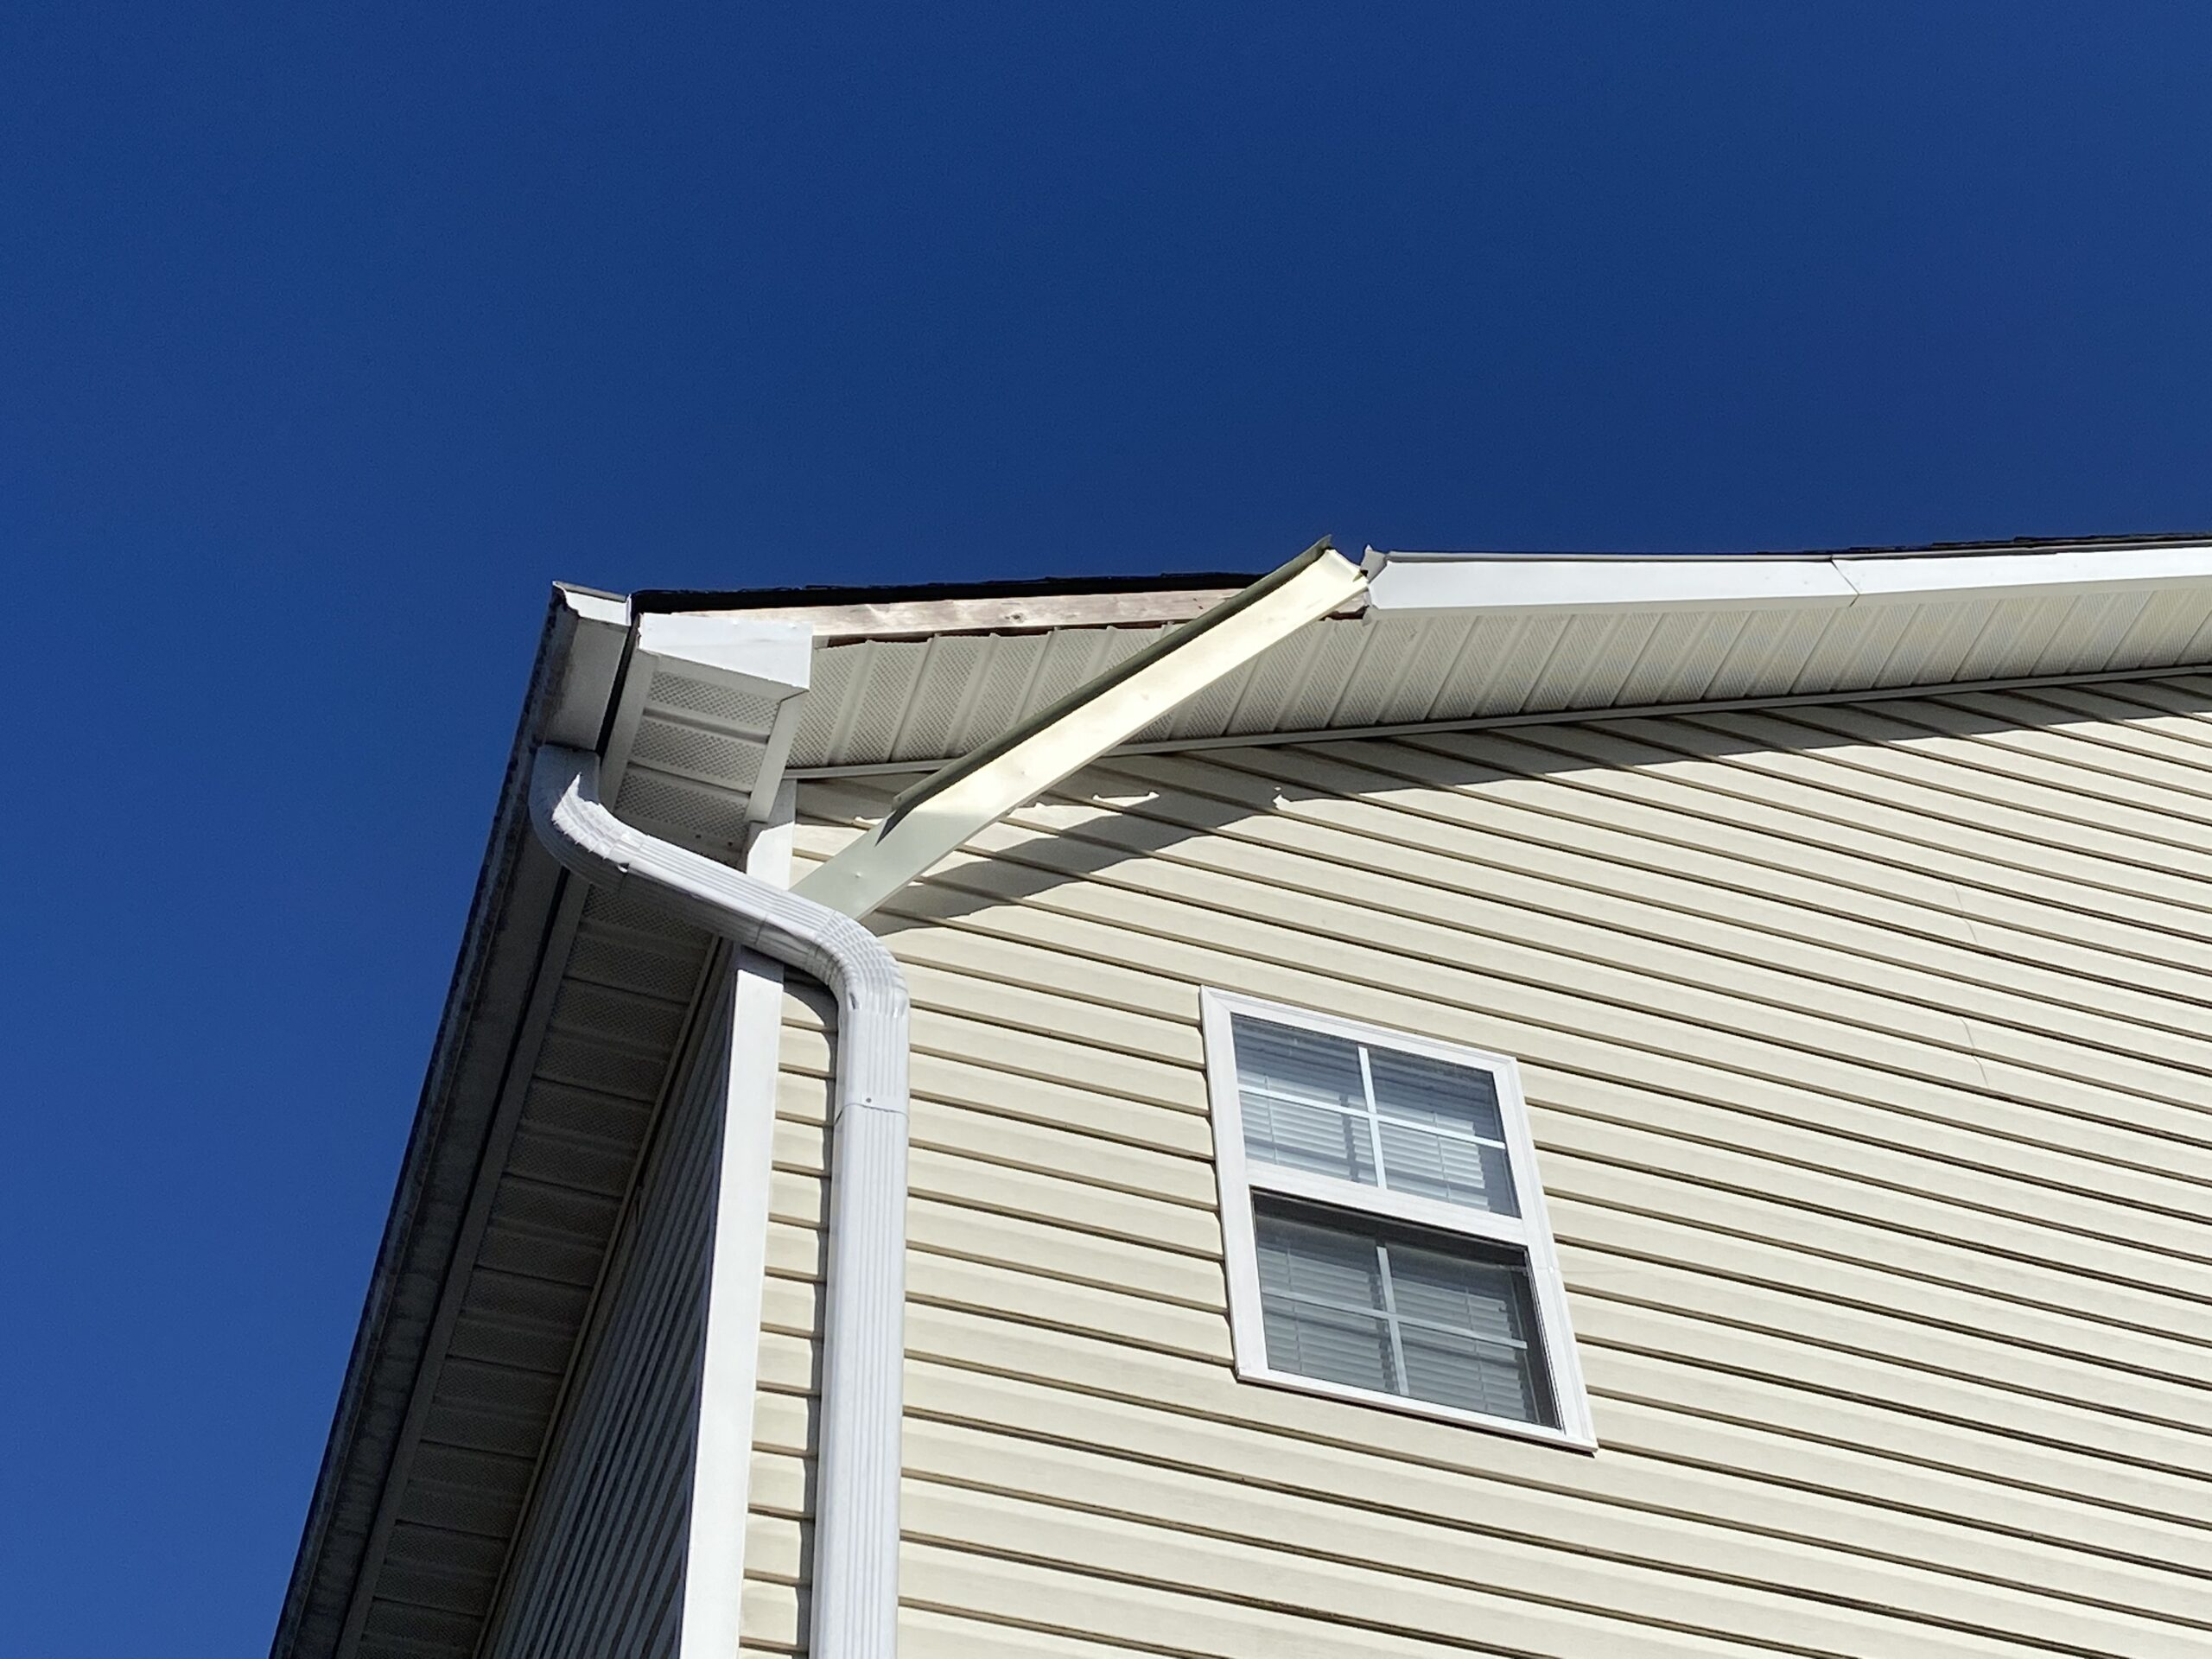 This is a picture of a two story home with white fascia metal that is falling down